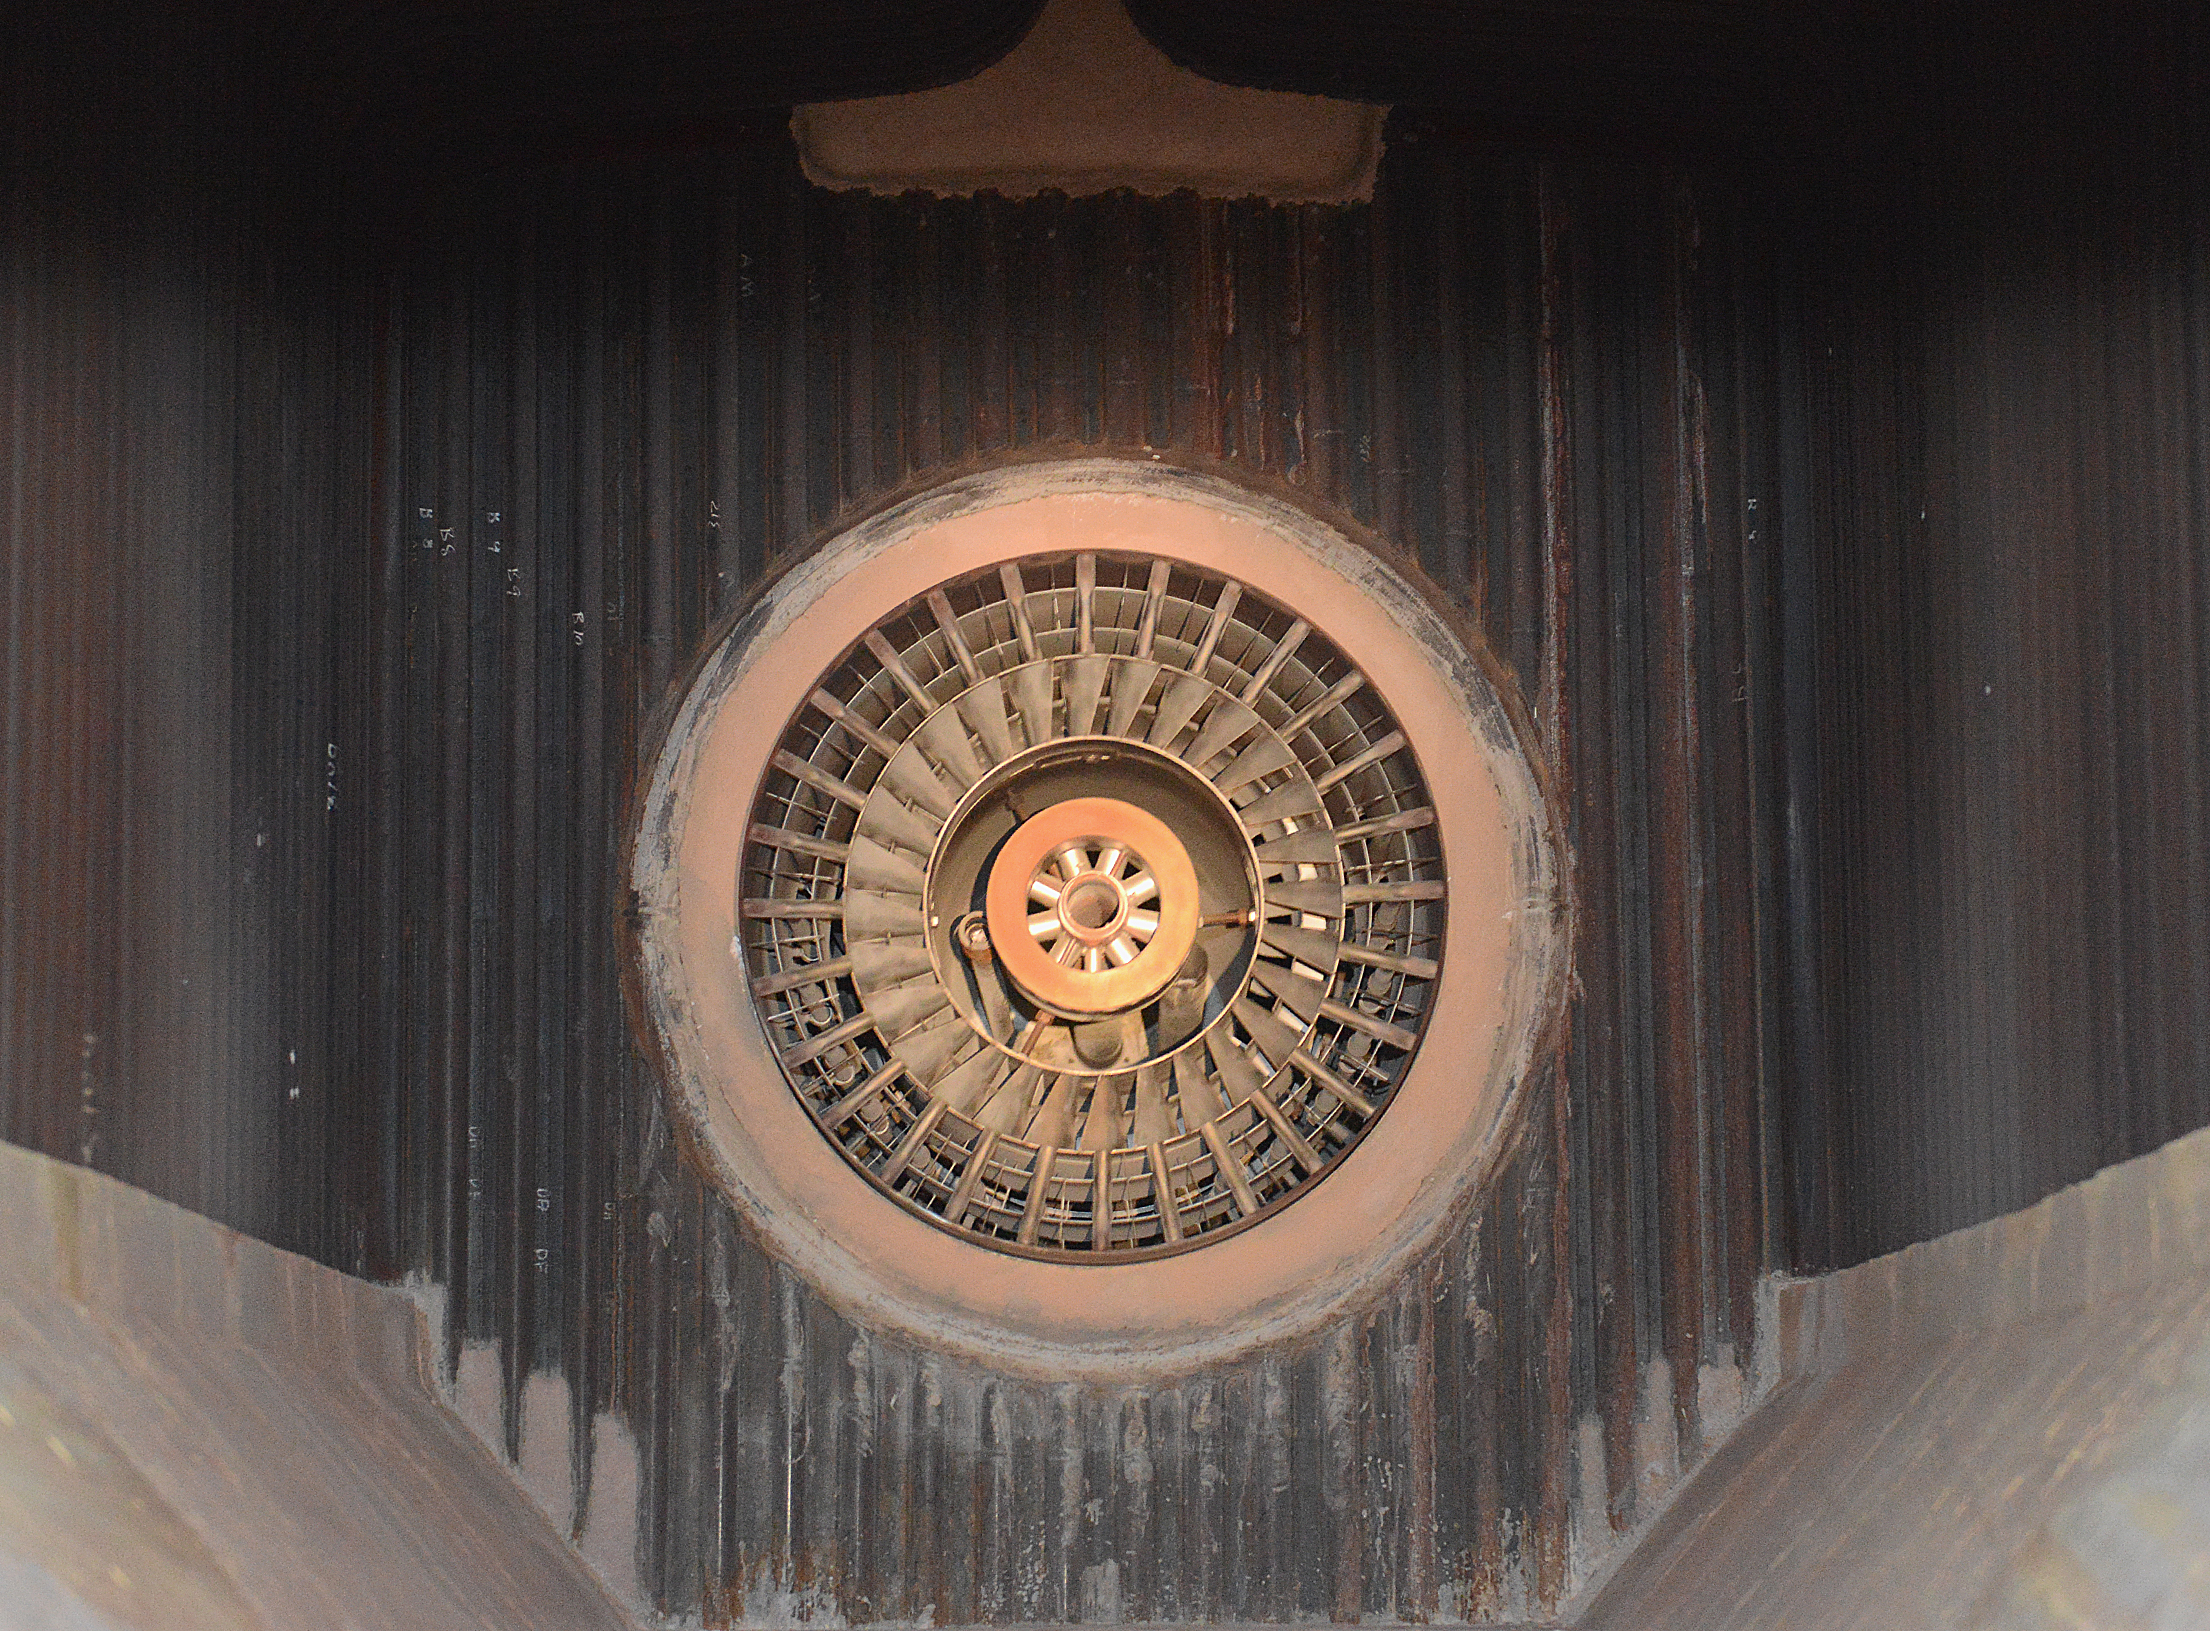 20140702radPittSteamBiz03-2 Inside a boiler open for inspection, the turbo fan that mixes air with gas ignited from multiple nozzles in a circular pattern can been seen. The plant's six gas-fired boilers have helped significantly reduce emissions.